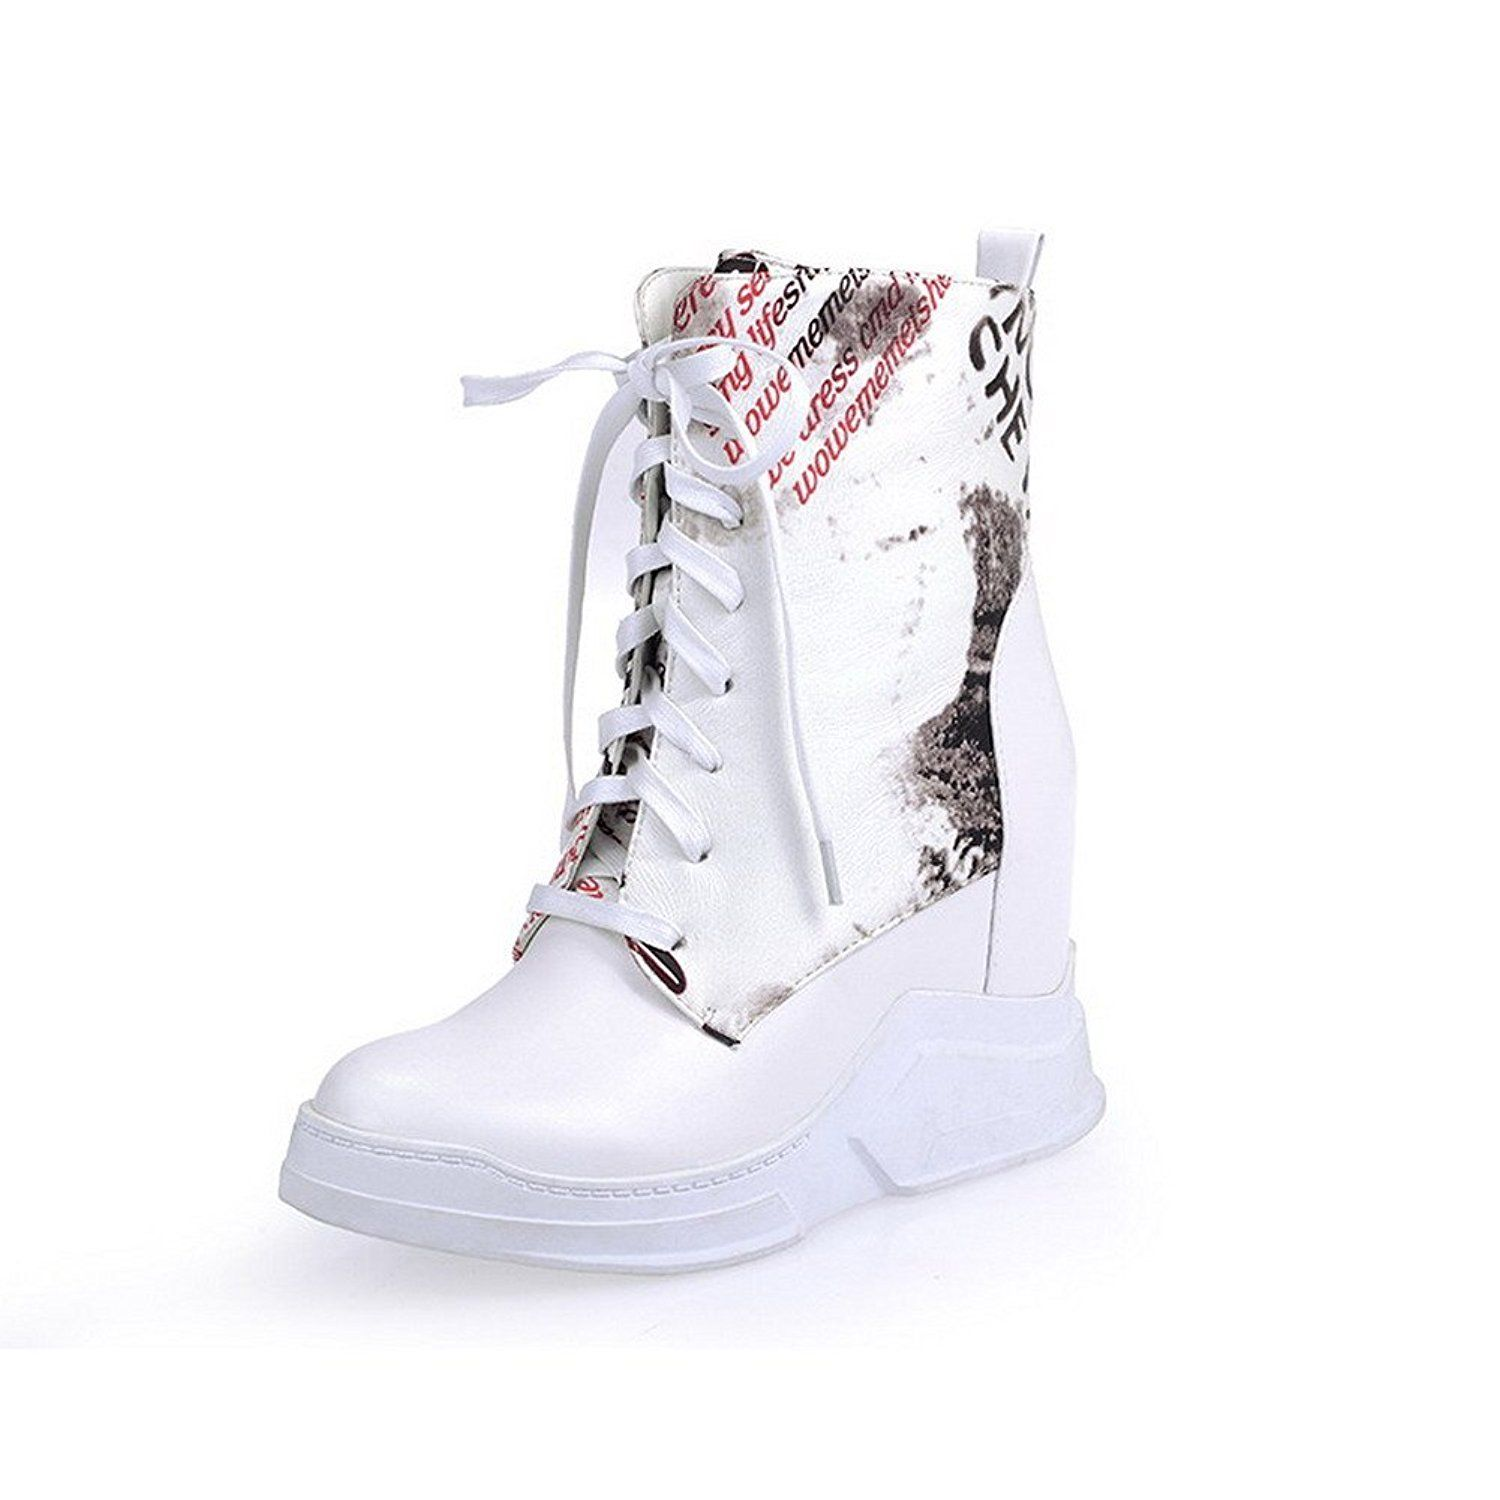 AmoonyFashion Women's Round-Toe Closed-Toe High-Heels Boots with Rubber Soles and Heighten Inside *** Click image to review more details.